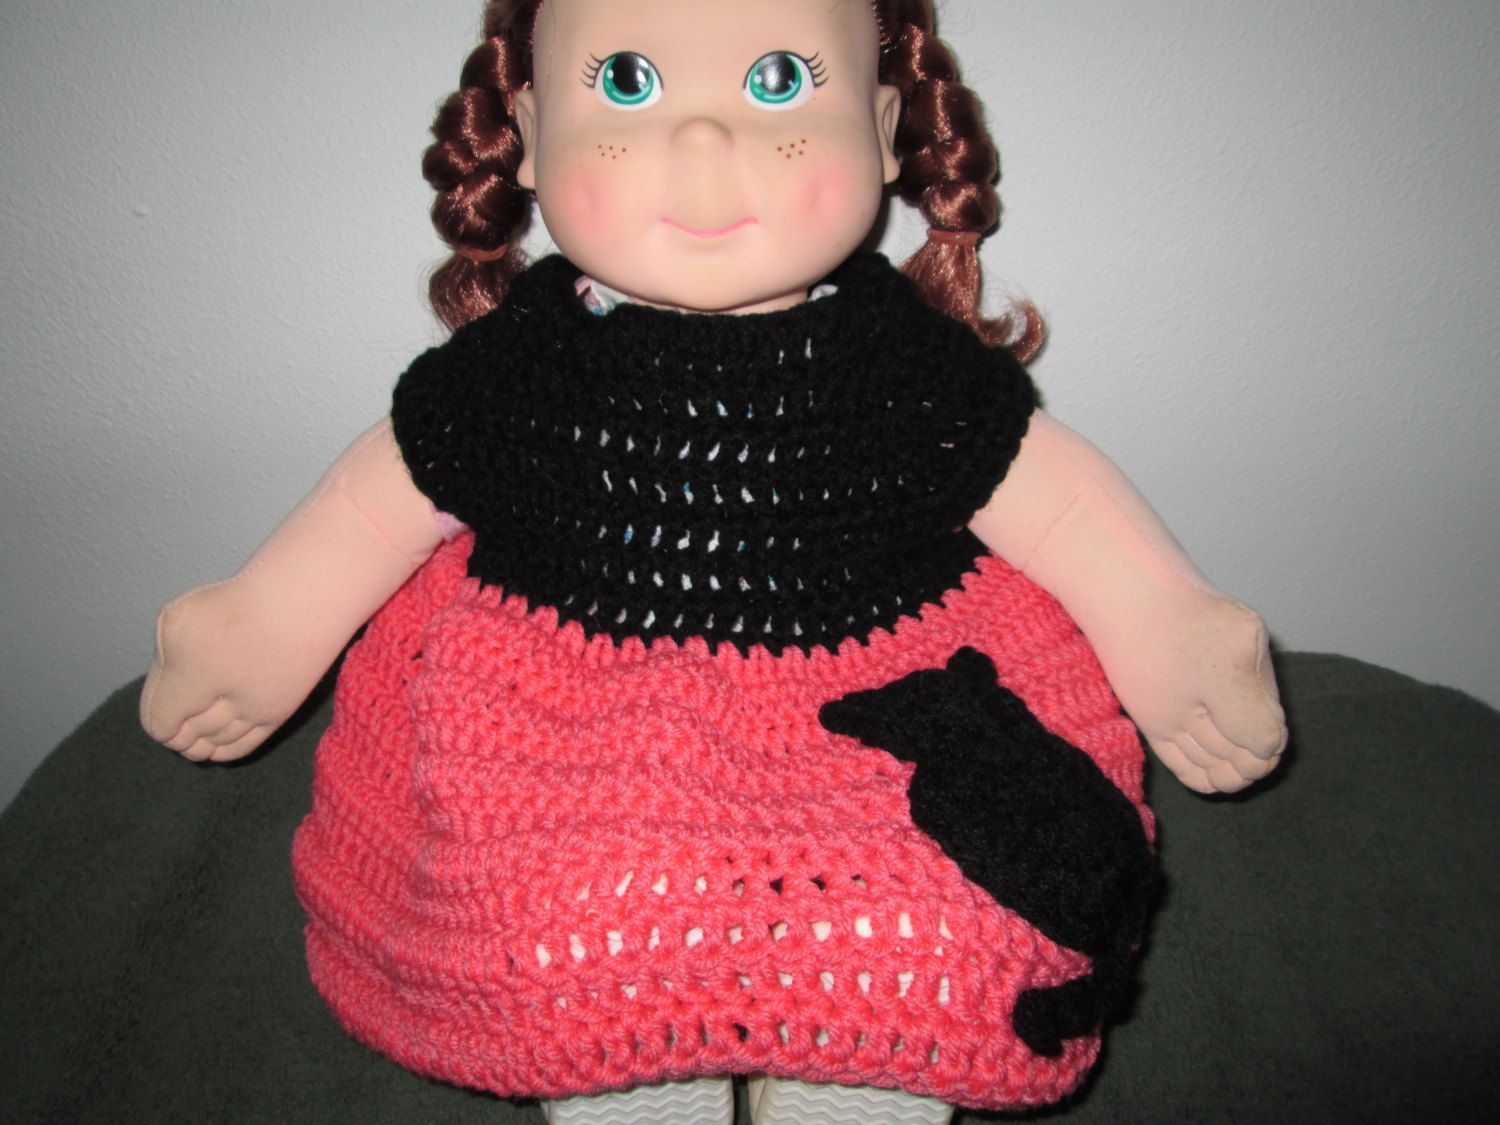 ec764c566537 3 - 24 Months Baby Girl Orange and Black Sweater Dress Crocheted by ...